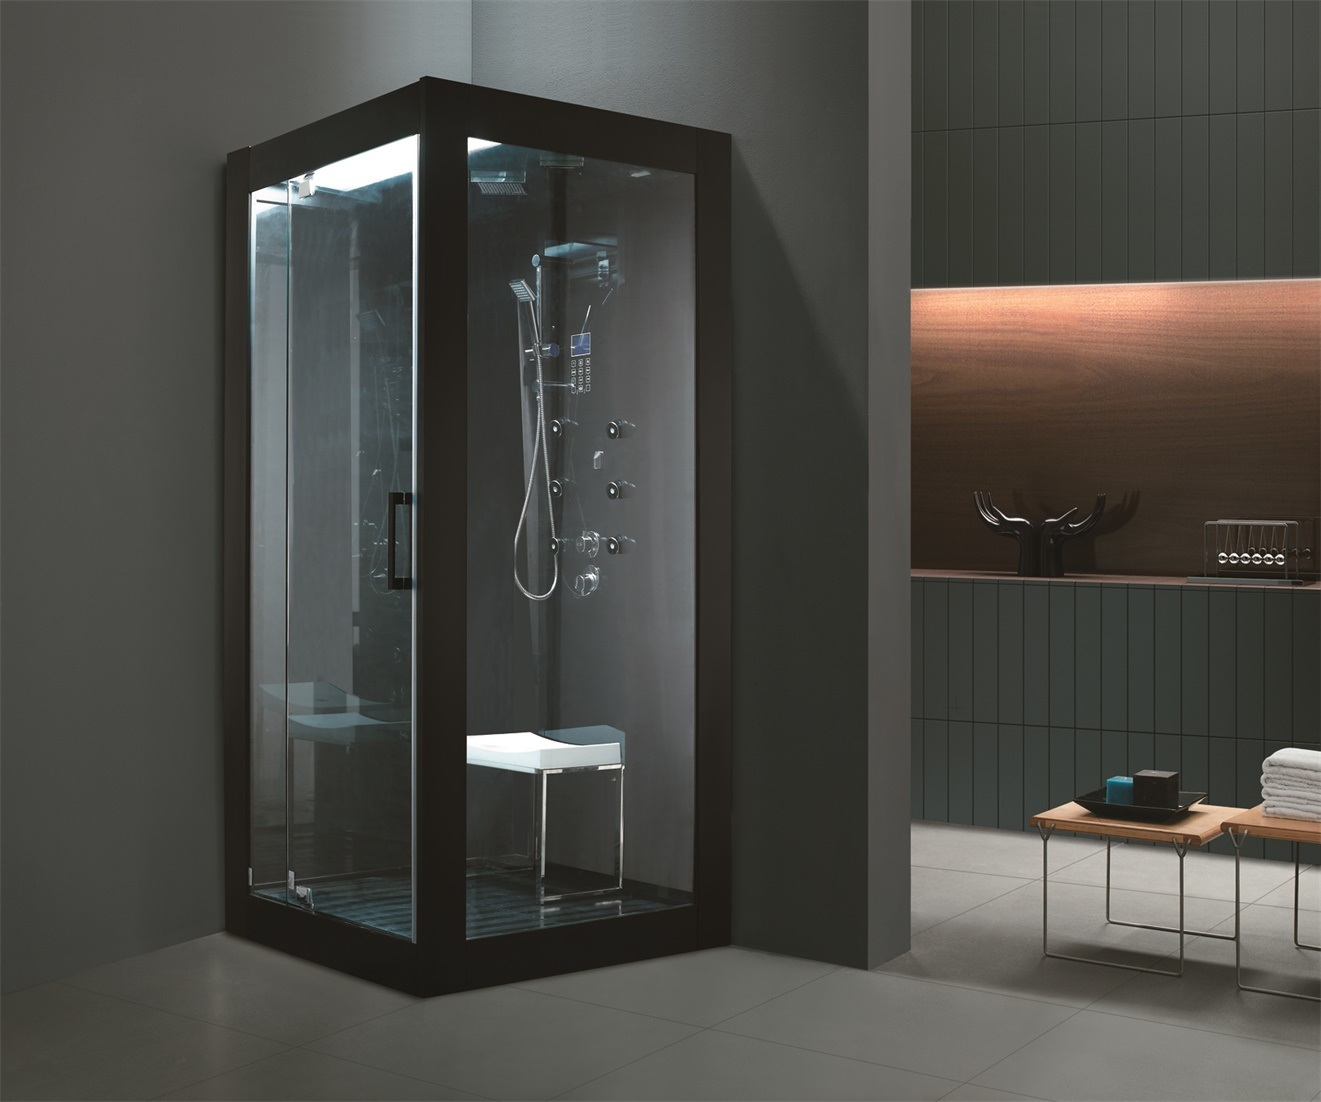 China Monalisa Tempered Glass Wall Shower Steam Cabinet (M-8283 ...